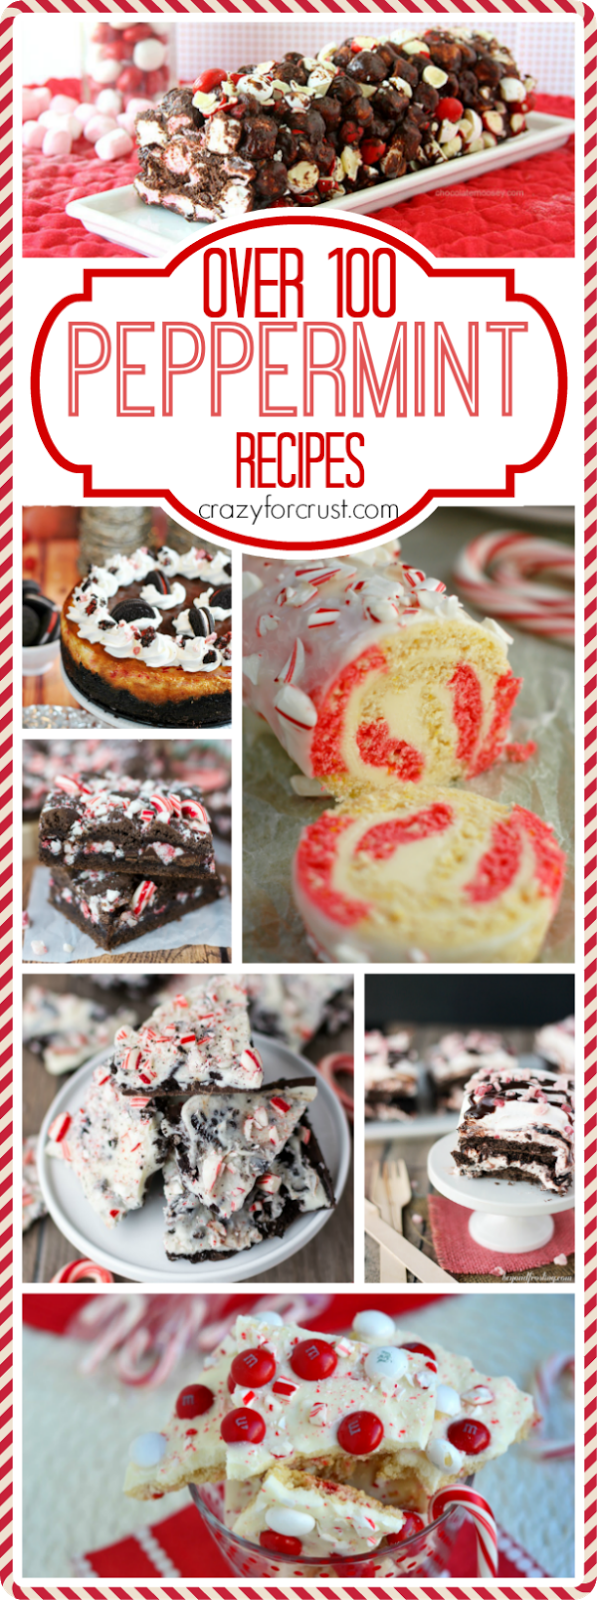 Over 100+ Peppermint Recipes